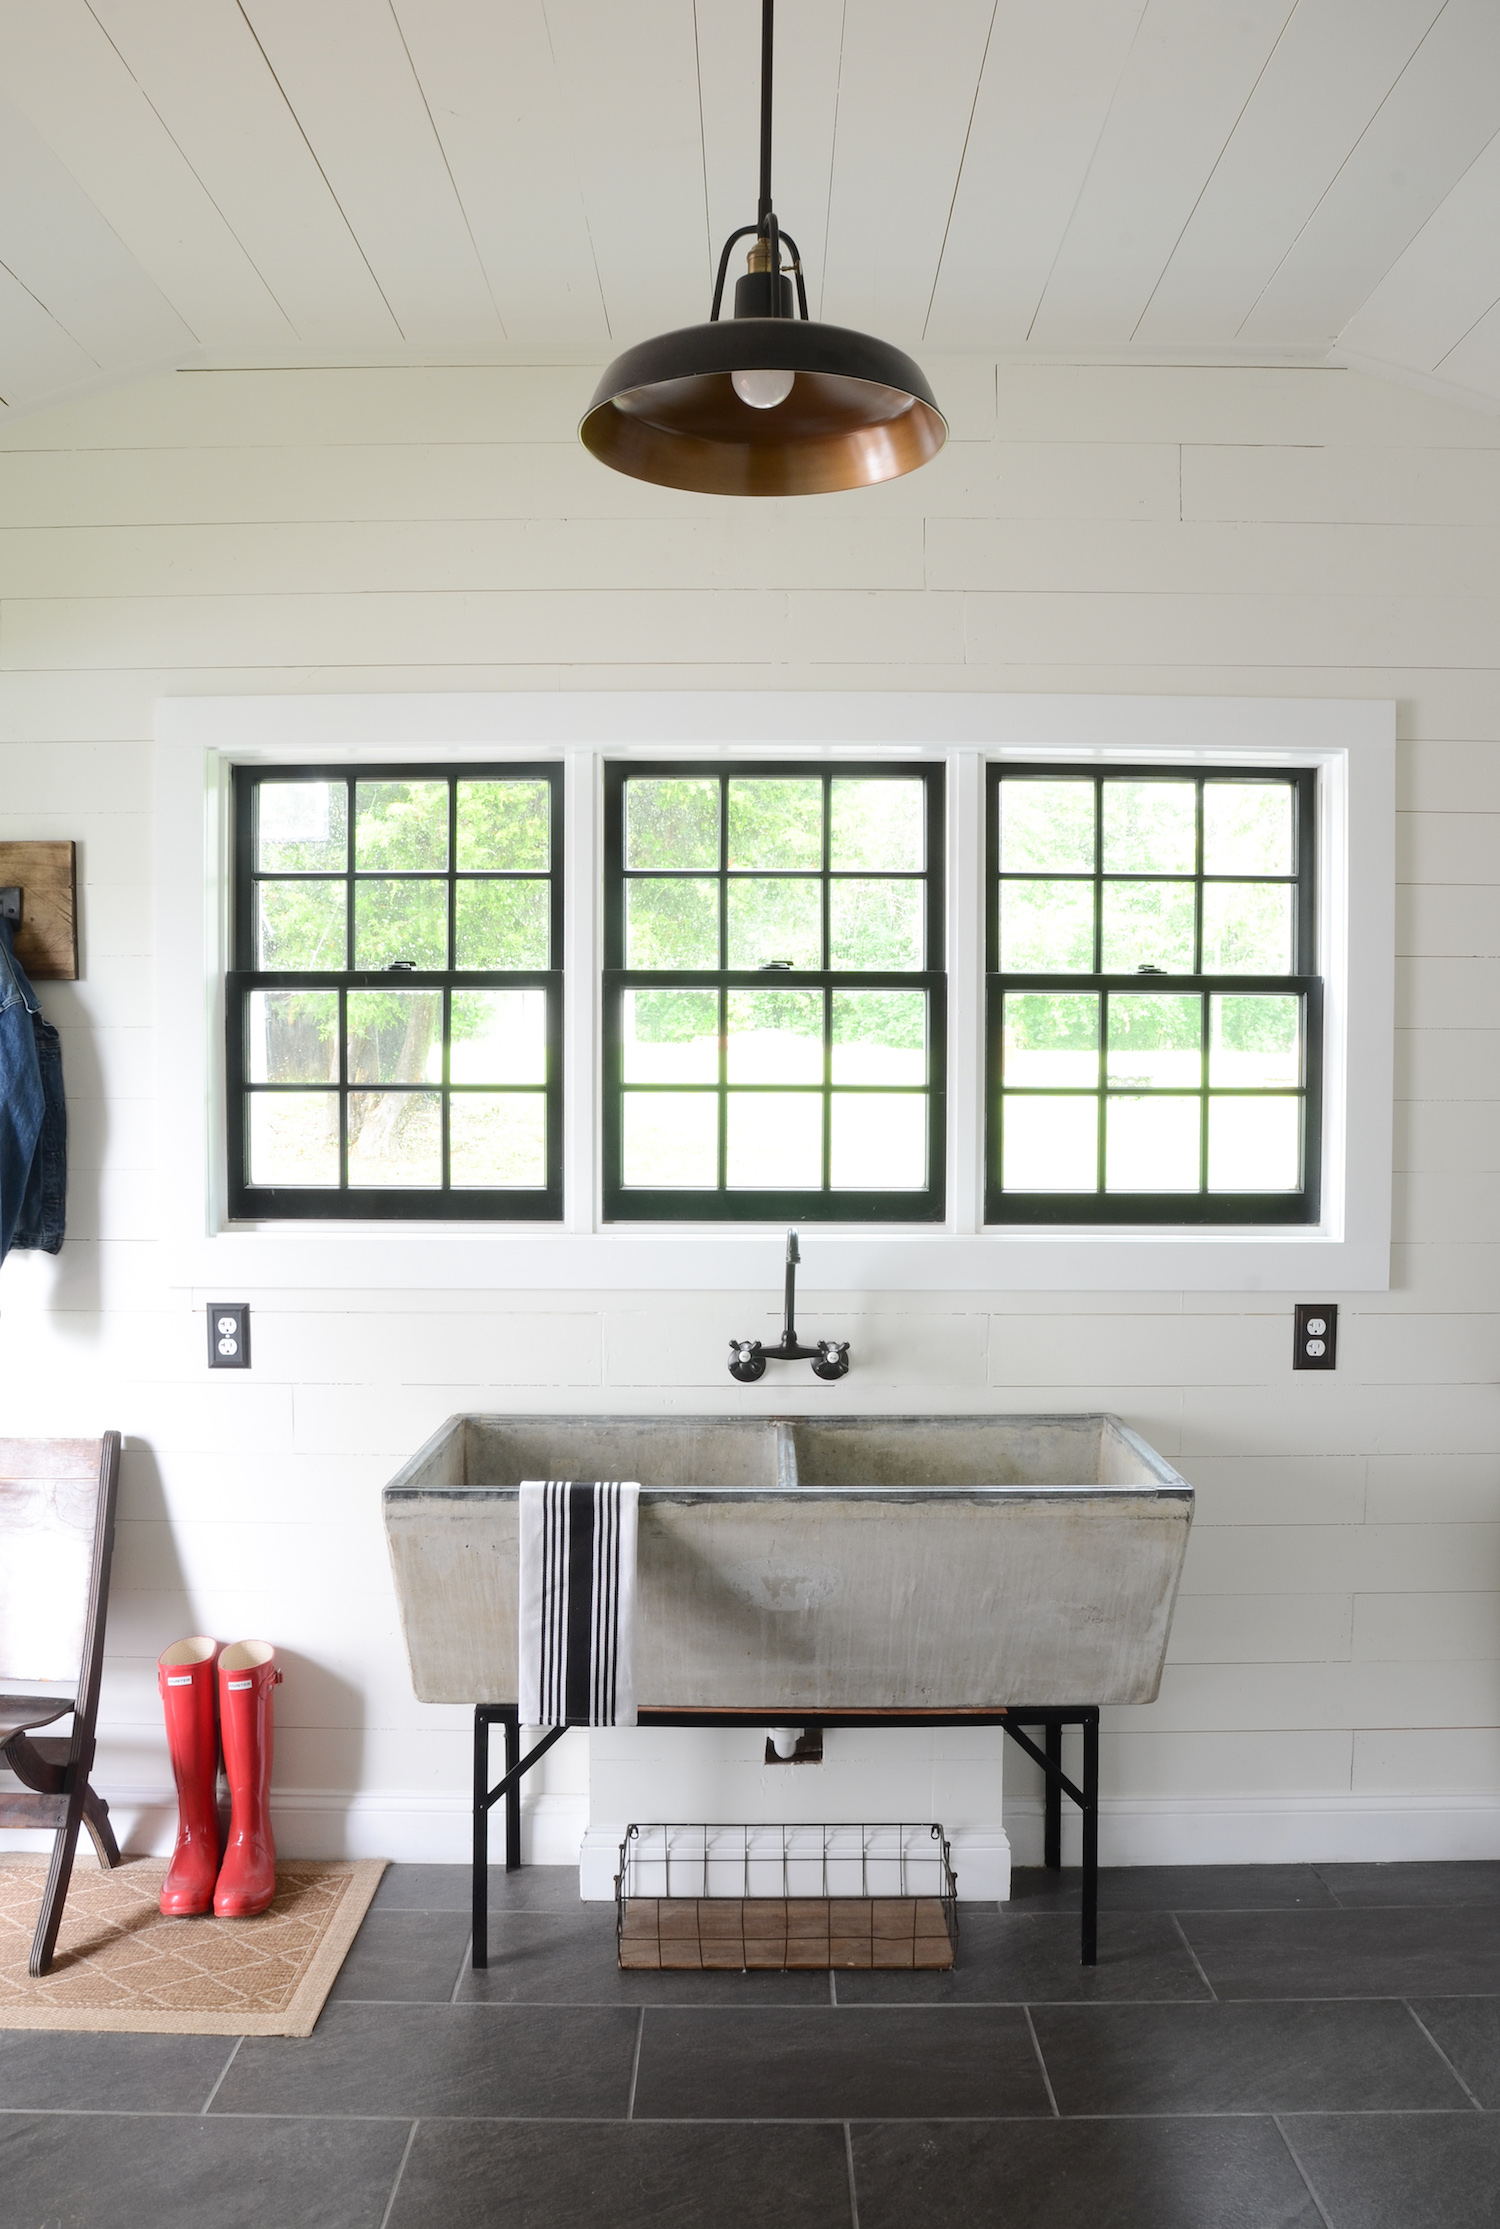 Another Feature I Love In The Laundry Room Is Beautiful Farmhouse Pendant Light That Hangs Right Middle Of Space Product Links At Bottom